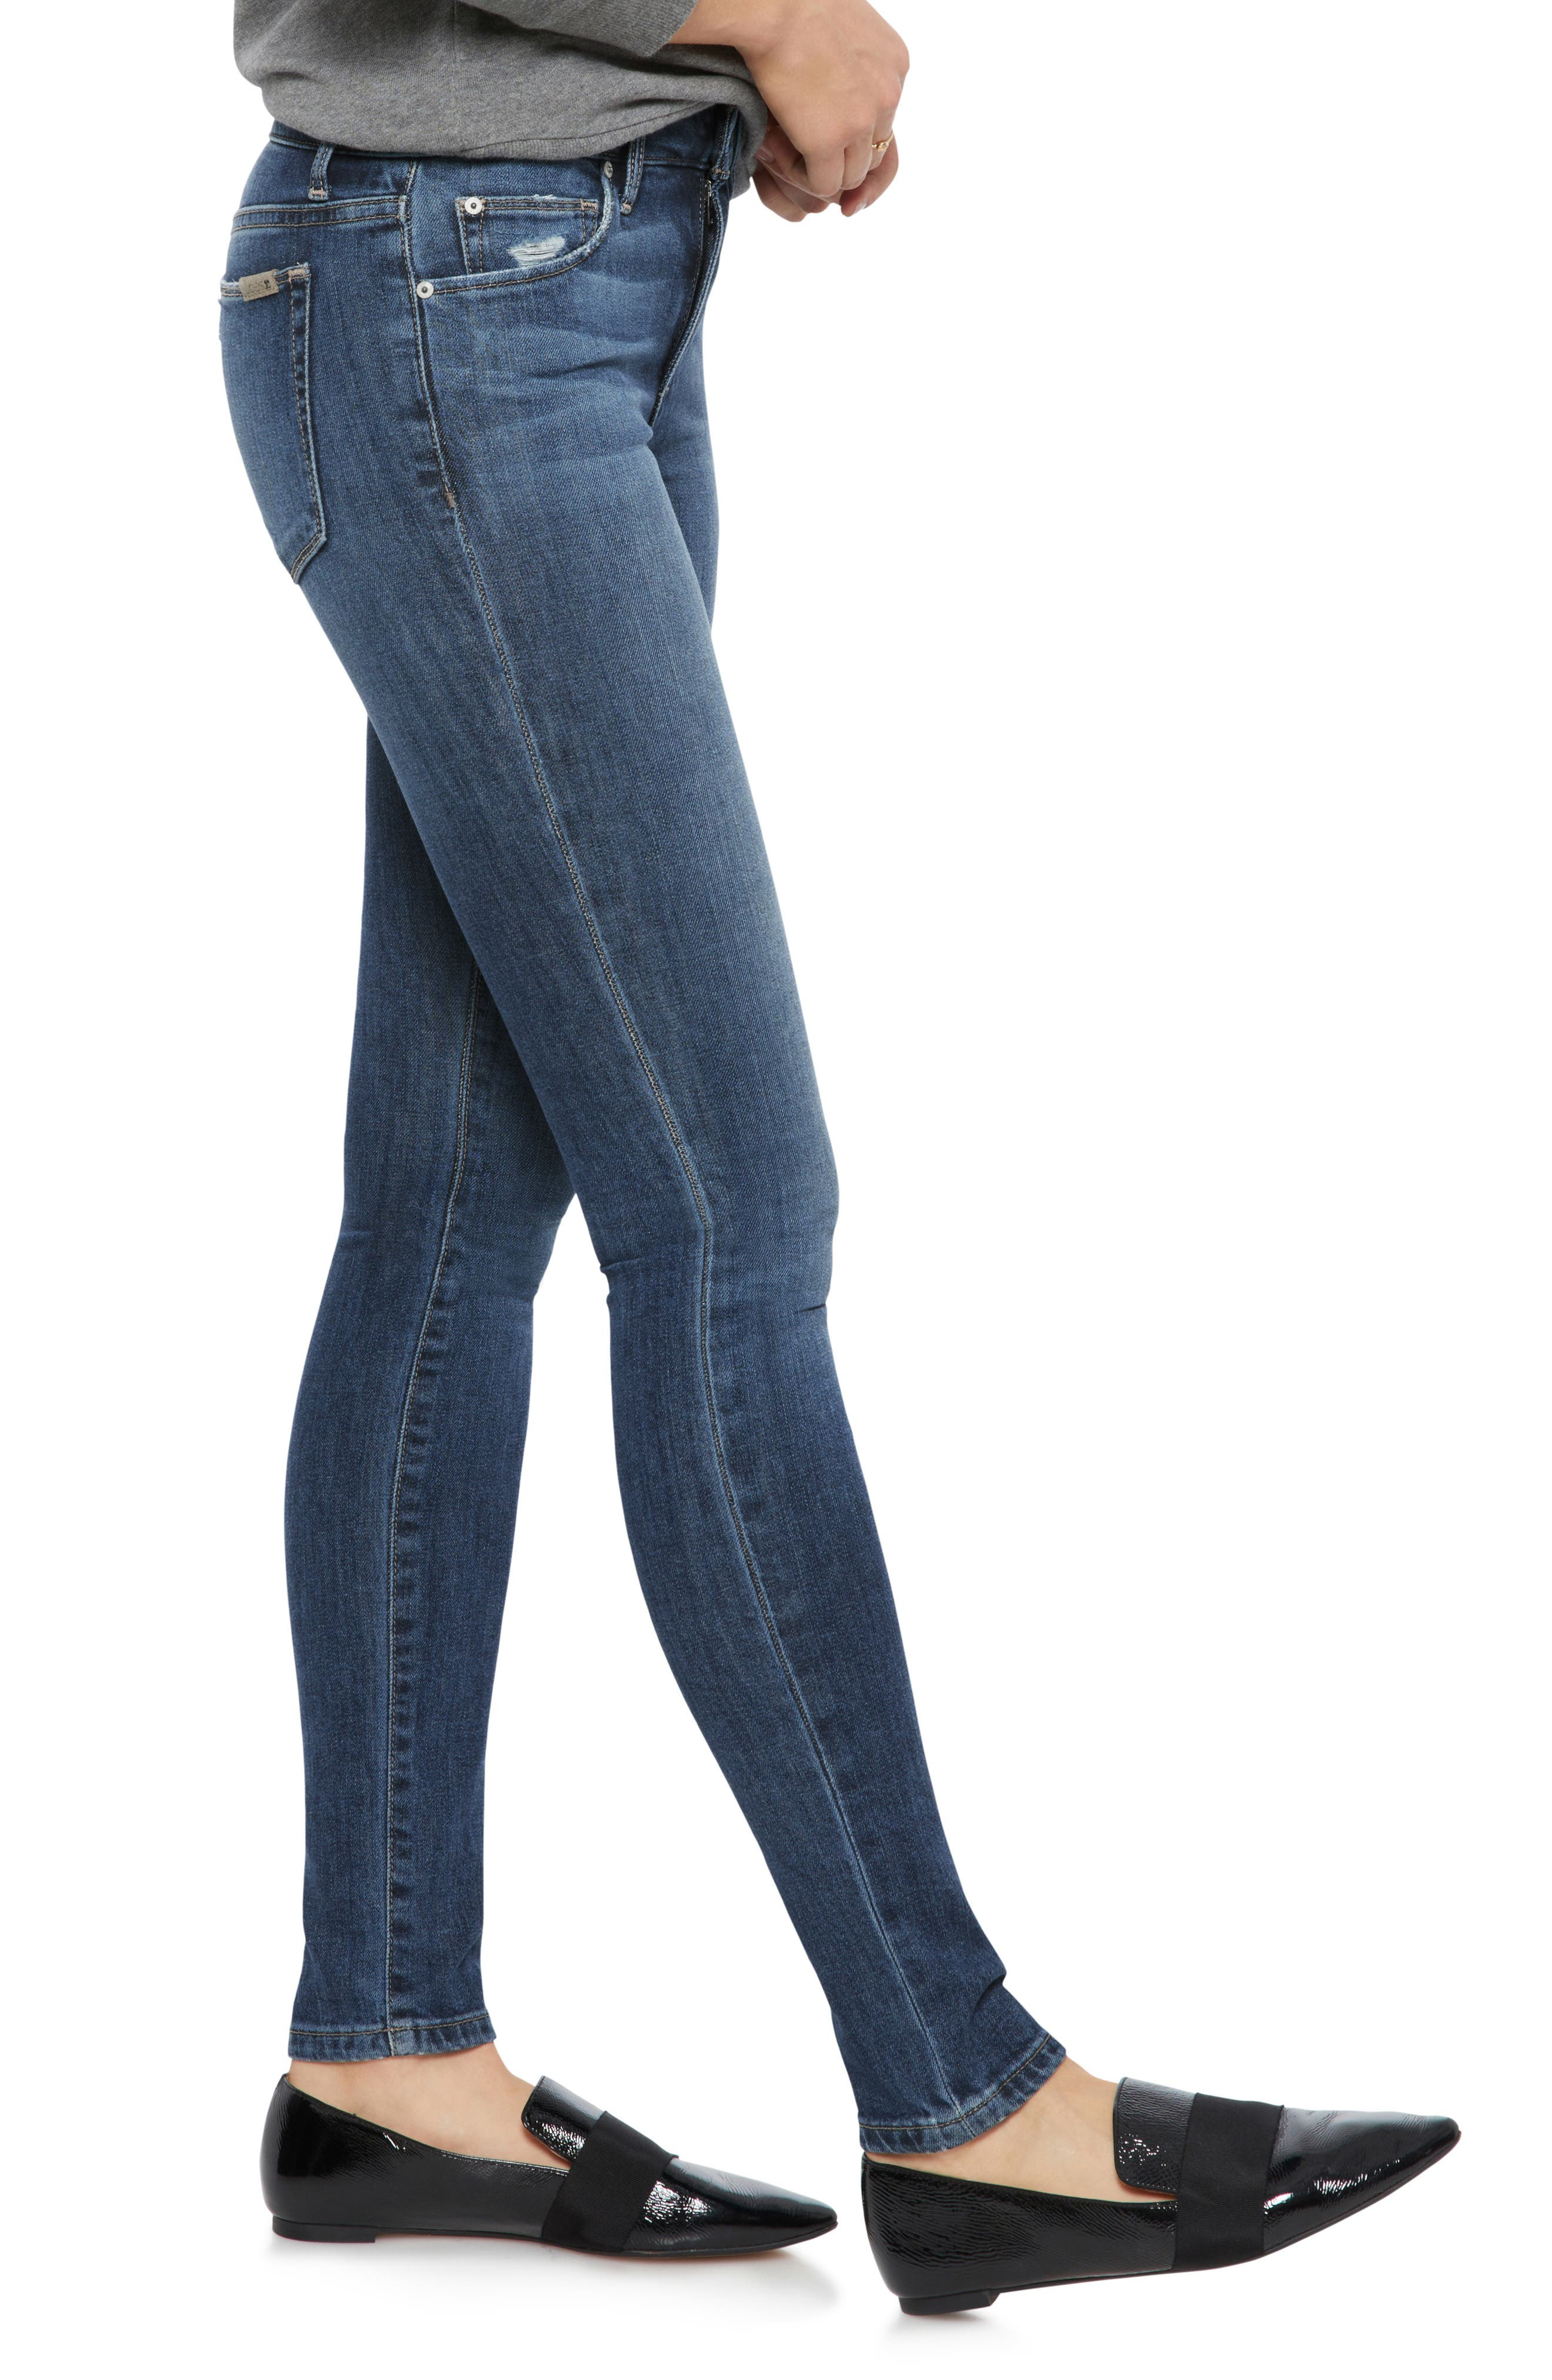 Icon Skinny Jeans,                             Alternate thumbnail 3, color,                             421